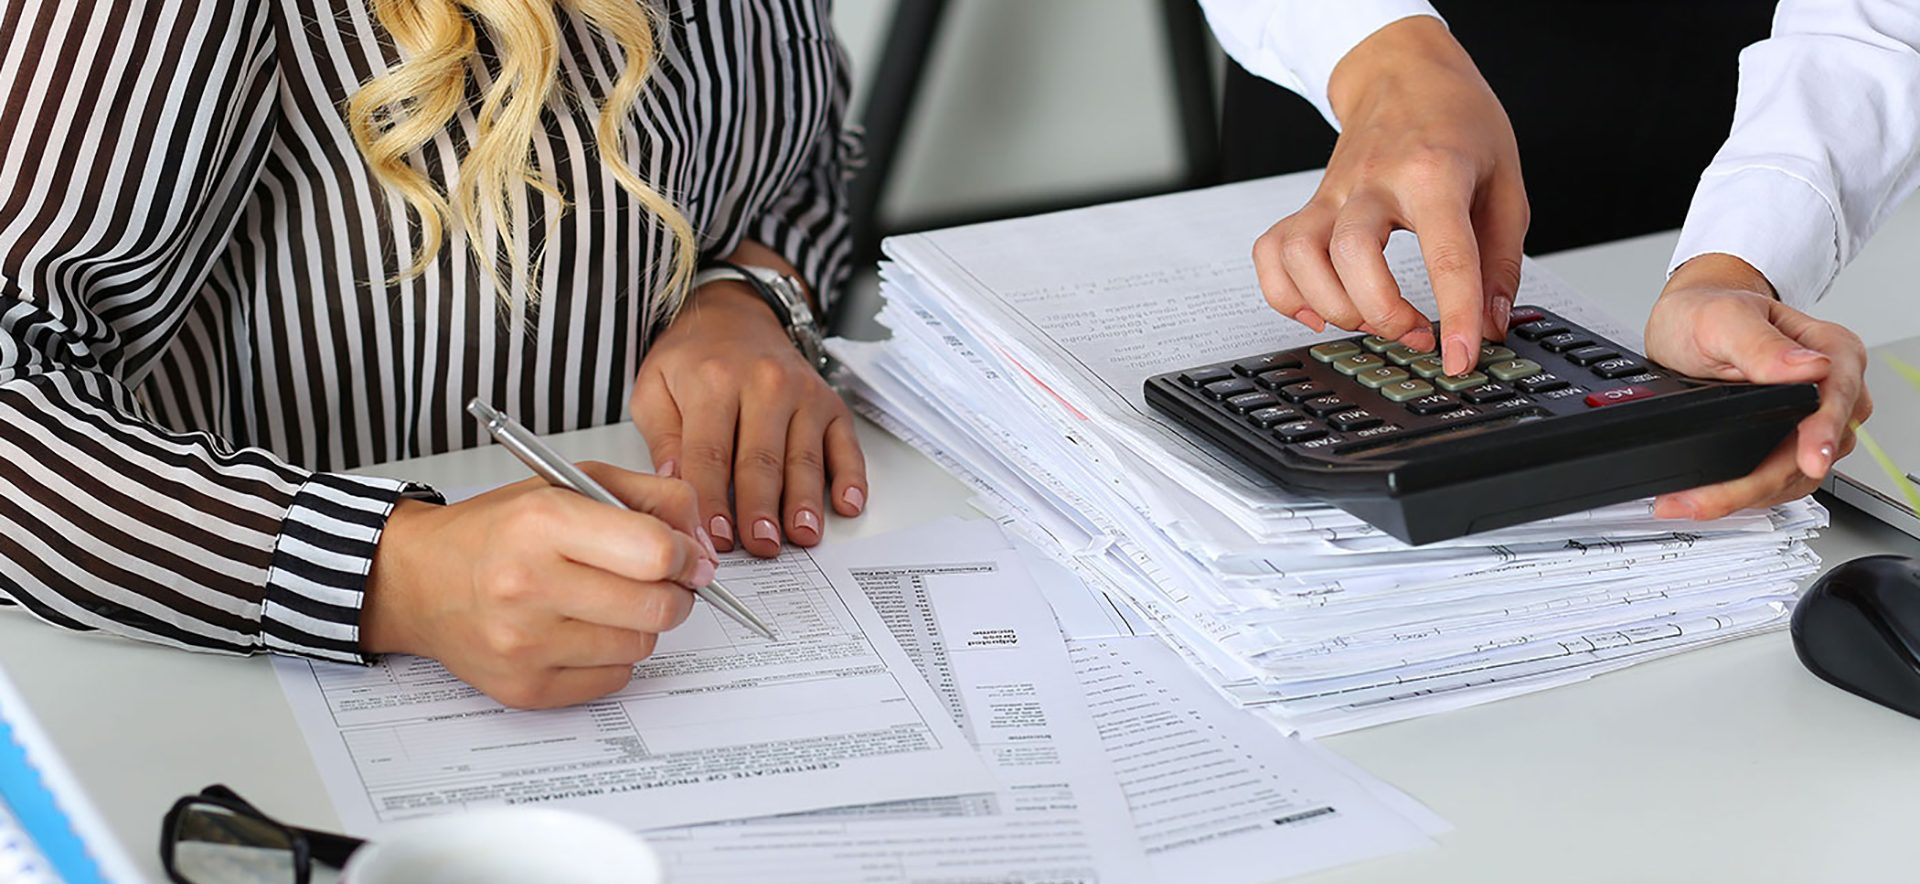 Two people doing accounting work